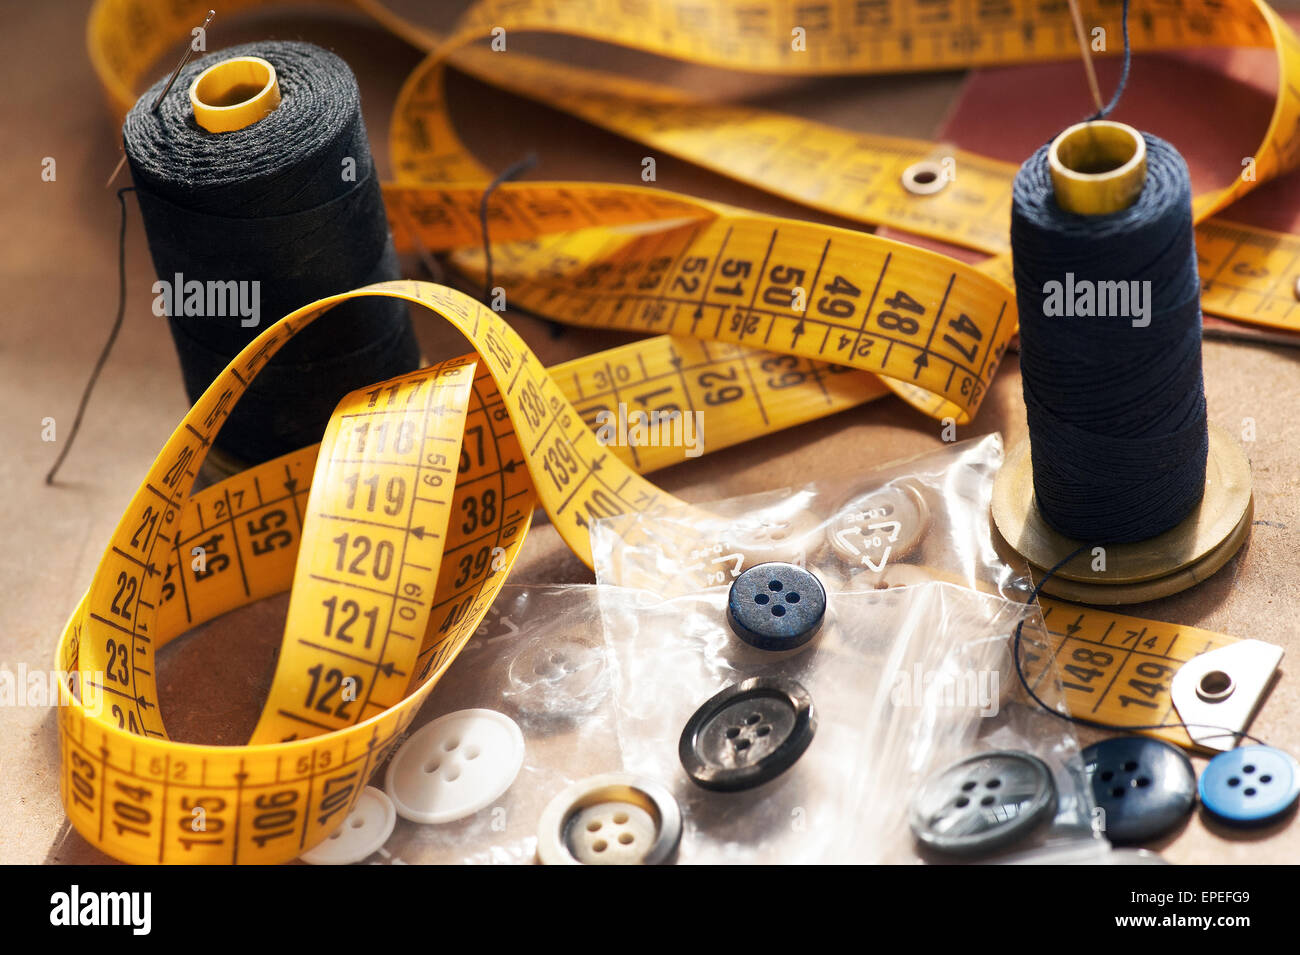 Clothing designers equipment with a tape measure - Stock Image